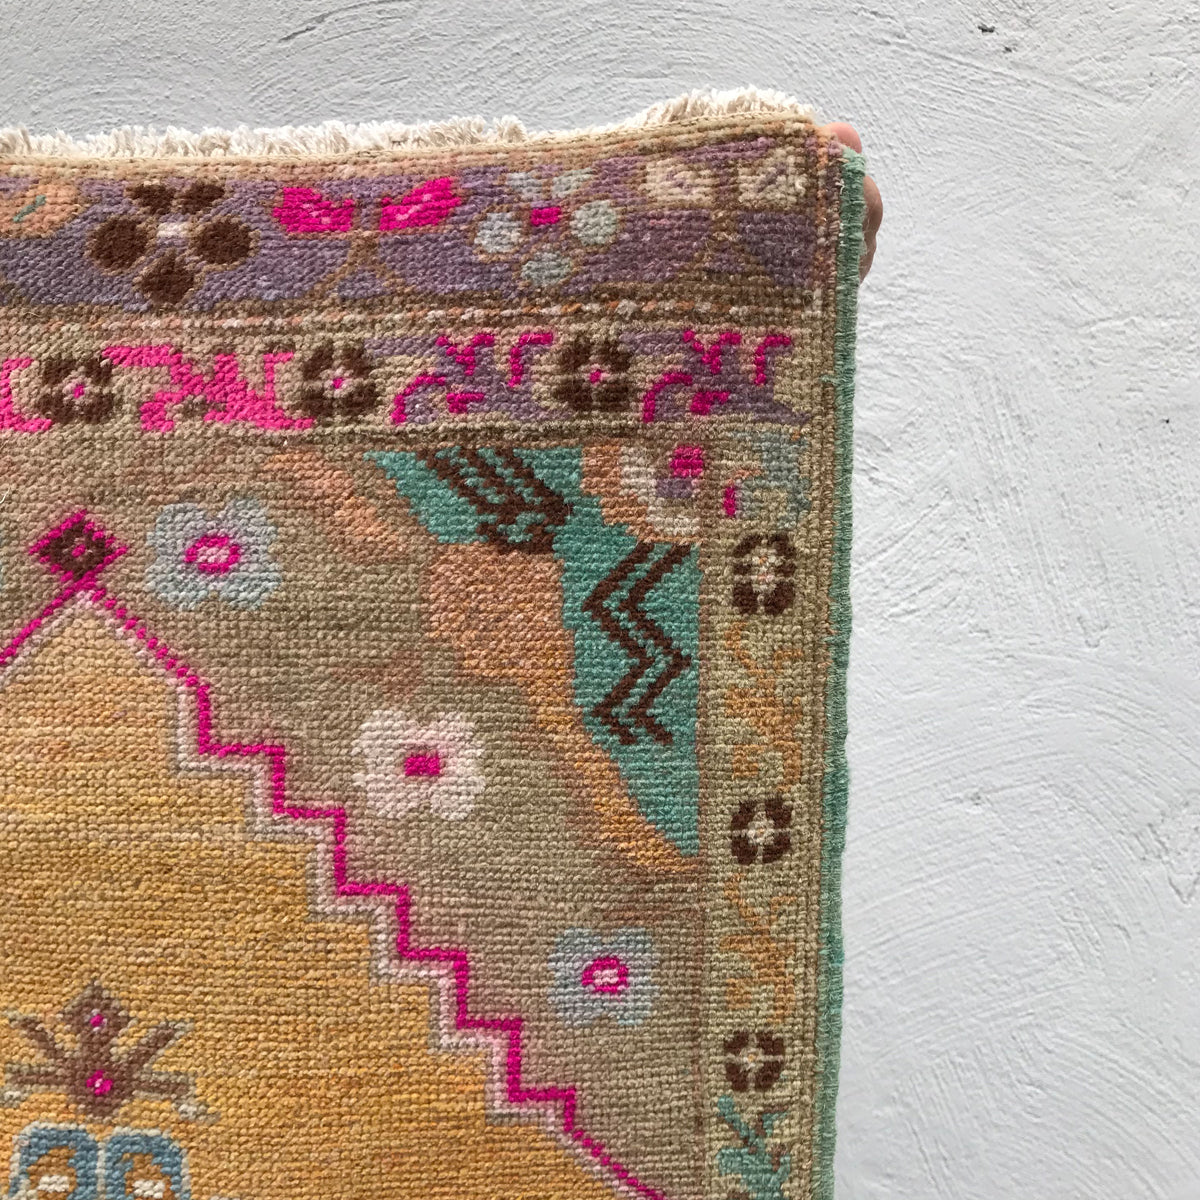 This small handwoven vintage Turkish rug has a great length and fun colors. Great for entryways, bathrooms, kitchens and layering. 21x45 inches.